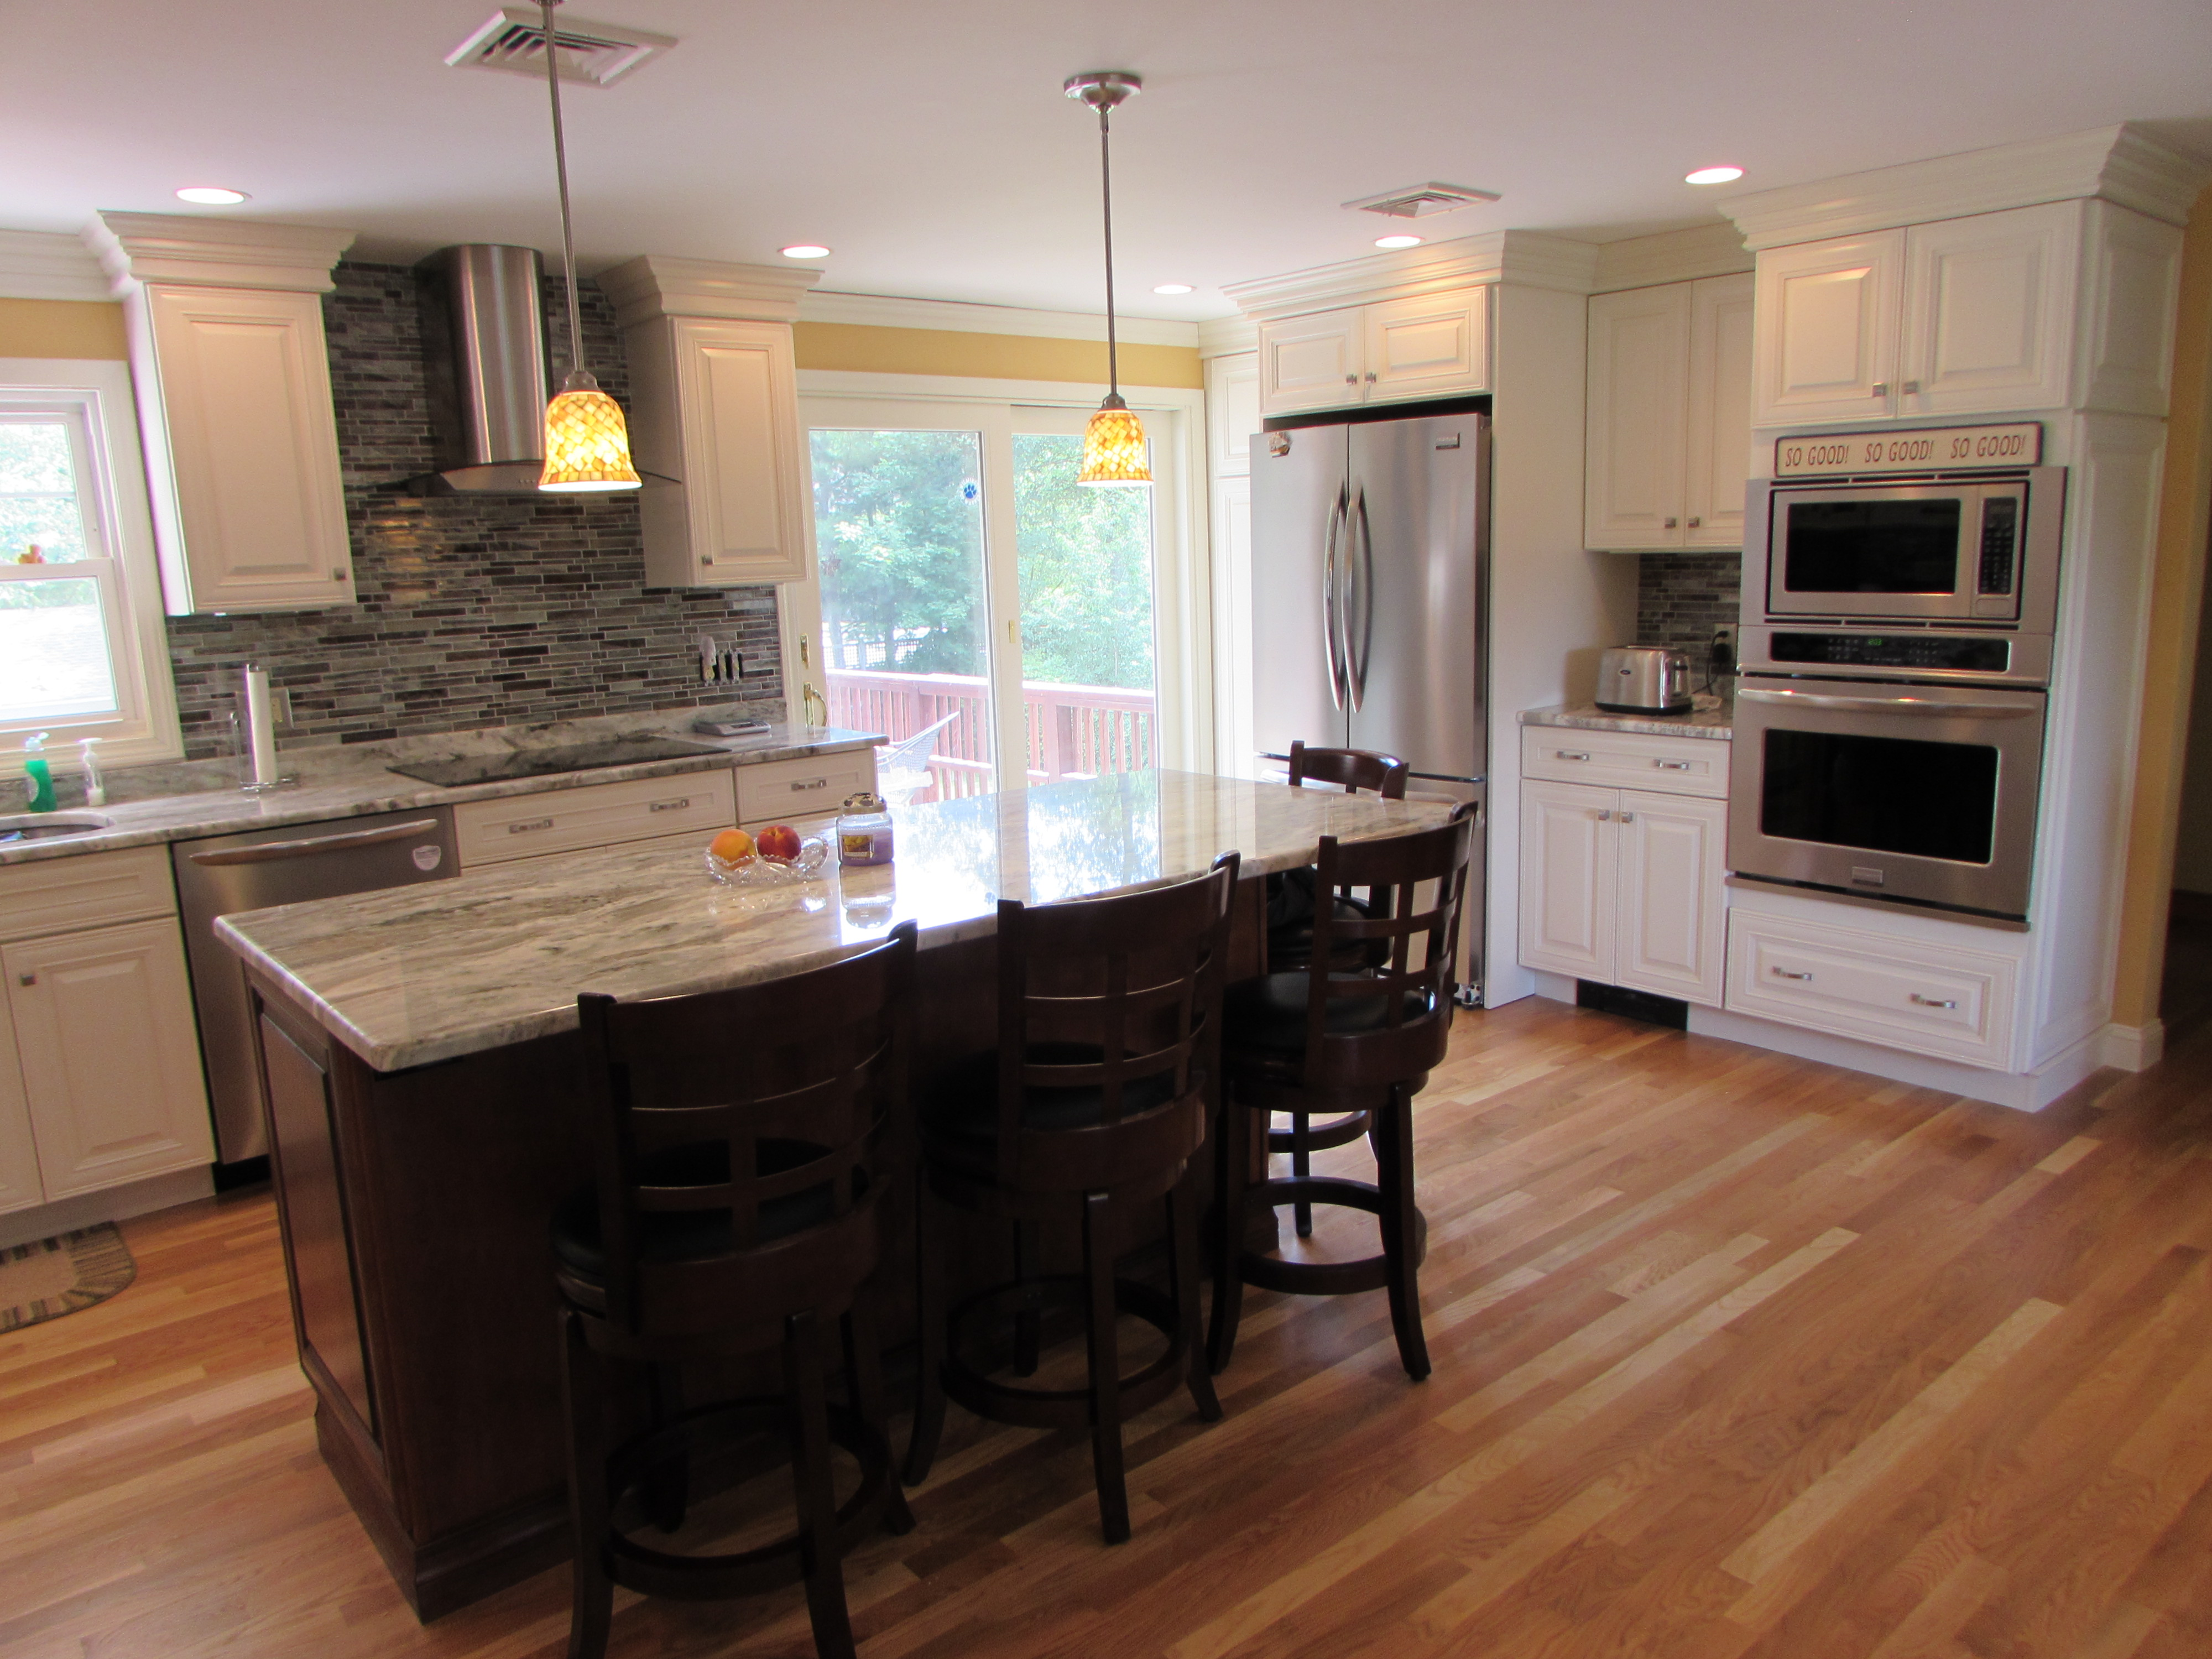 Kitchen Renovations | Quality kitchen renovations in Massachusetts ...